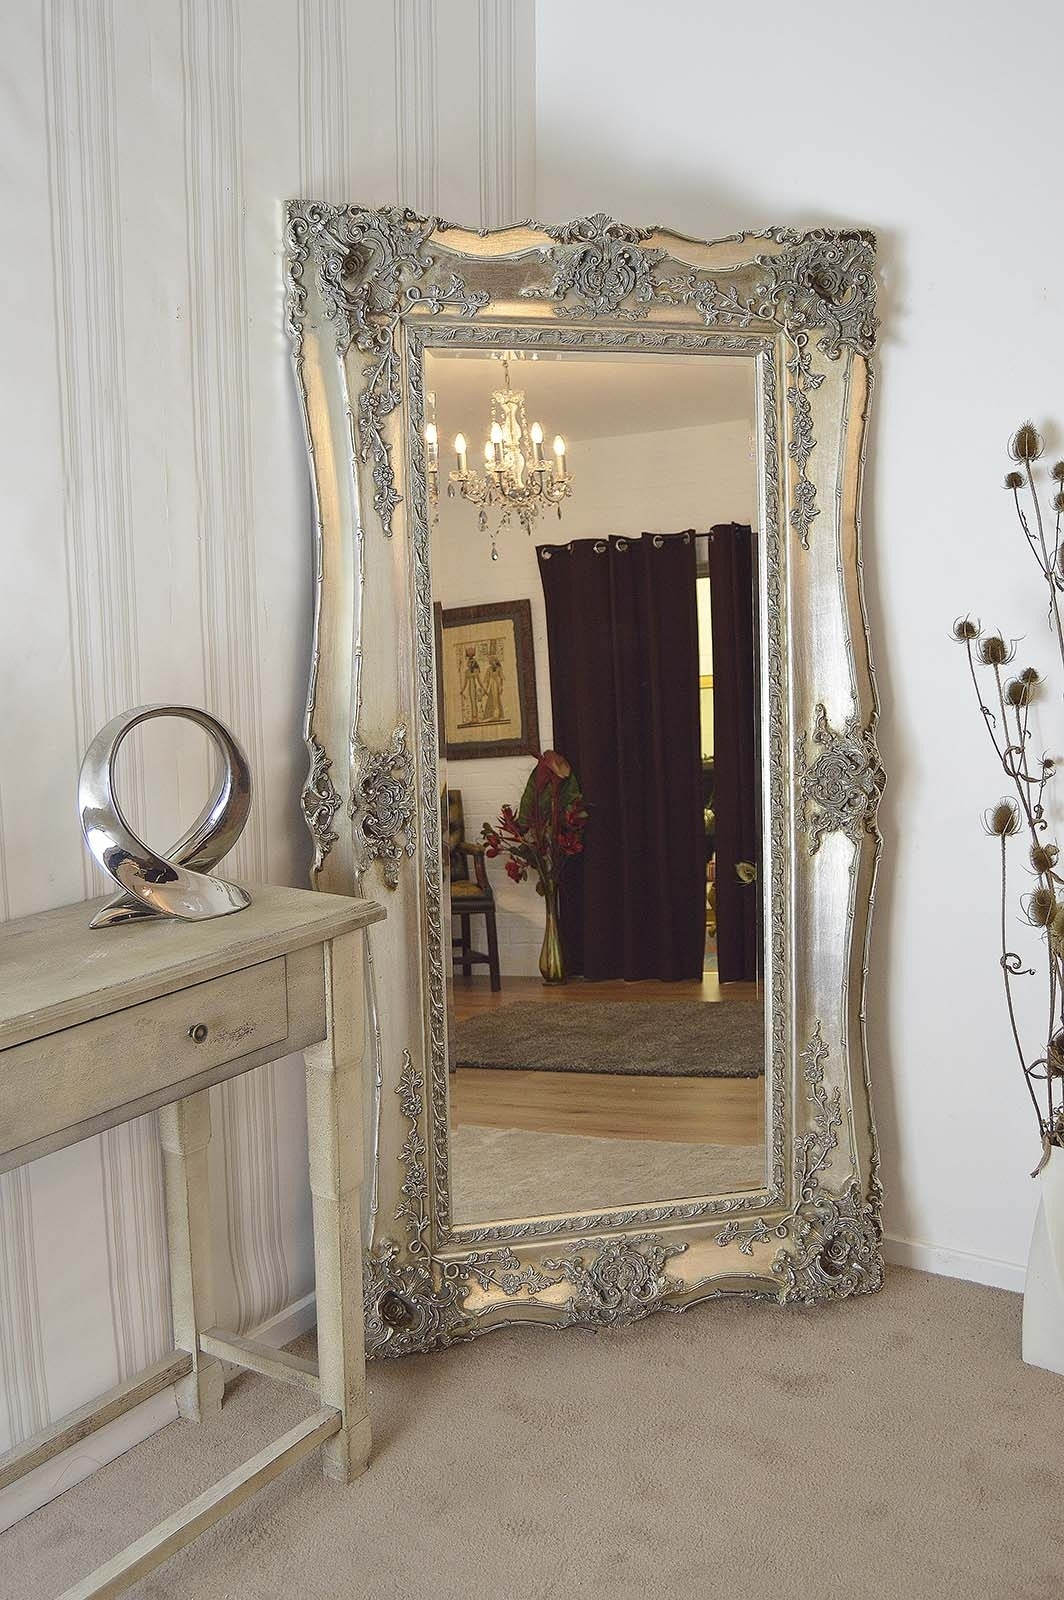 Ornate Full Length Wall Mirror Mirror Design Ideas In Large Ornate Wall Mirror (Image 12 of 15)